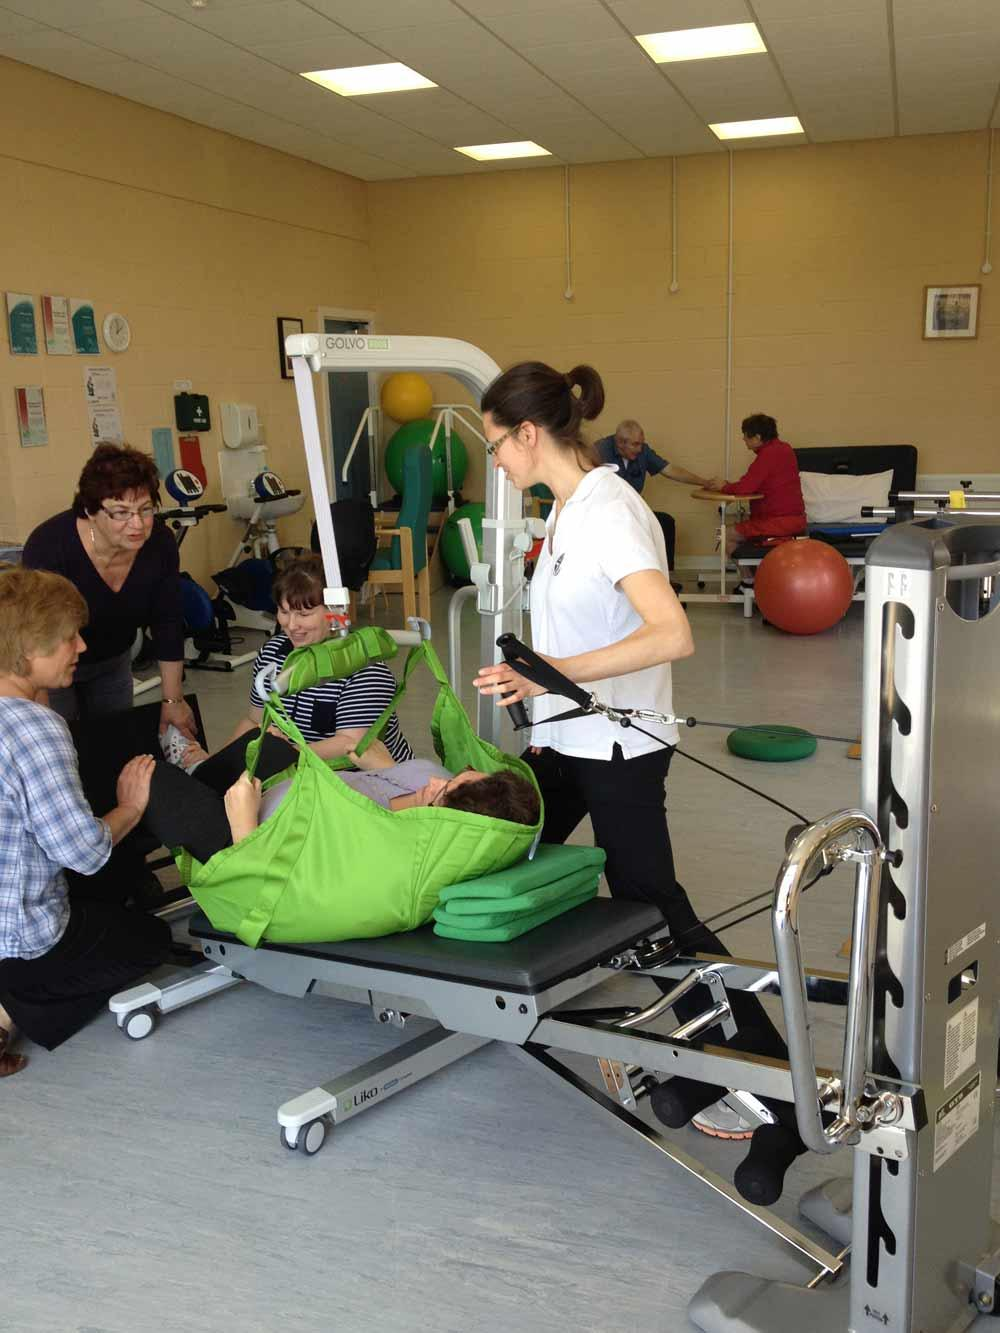 The Merlin MS centre uses GRAVITY training with its patients